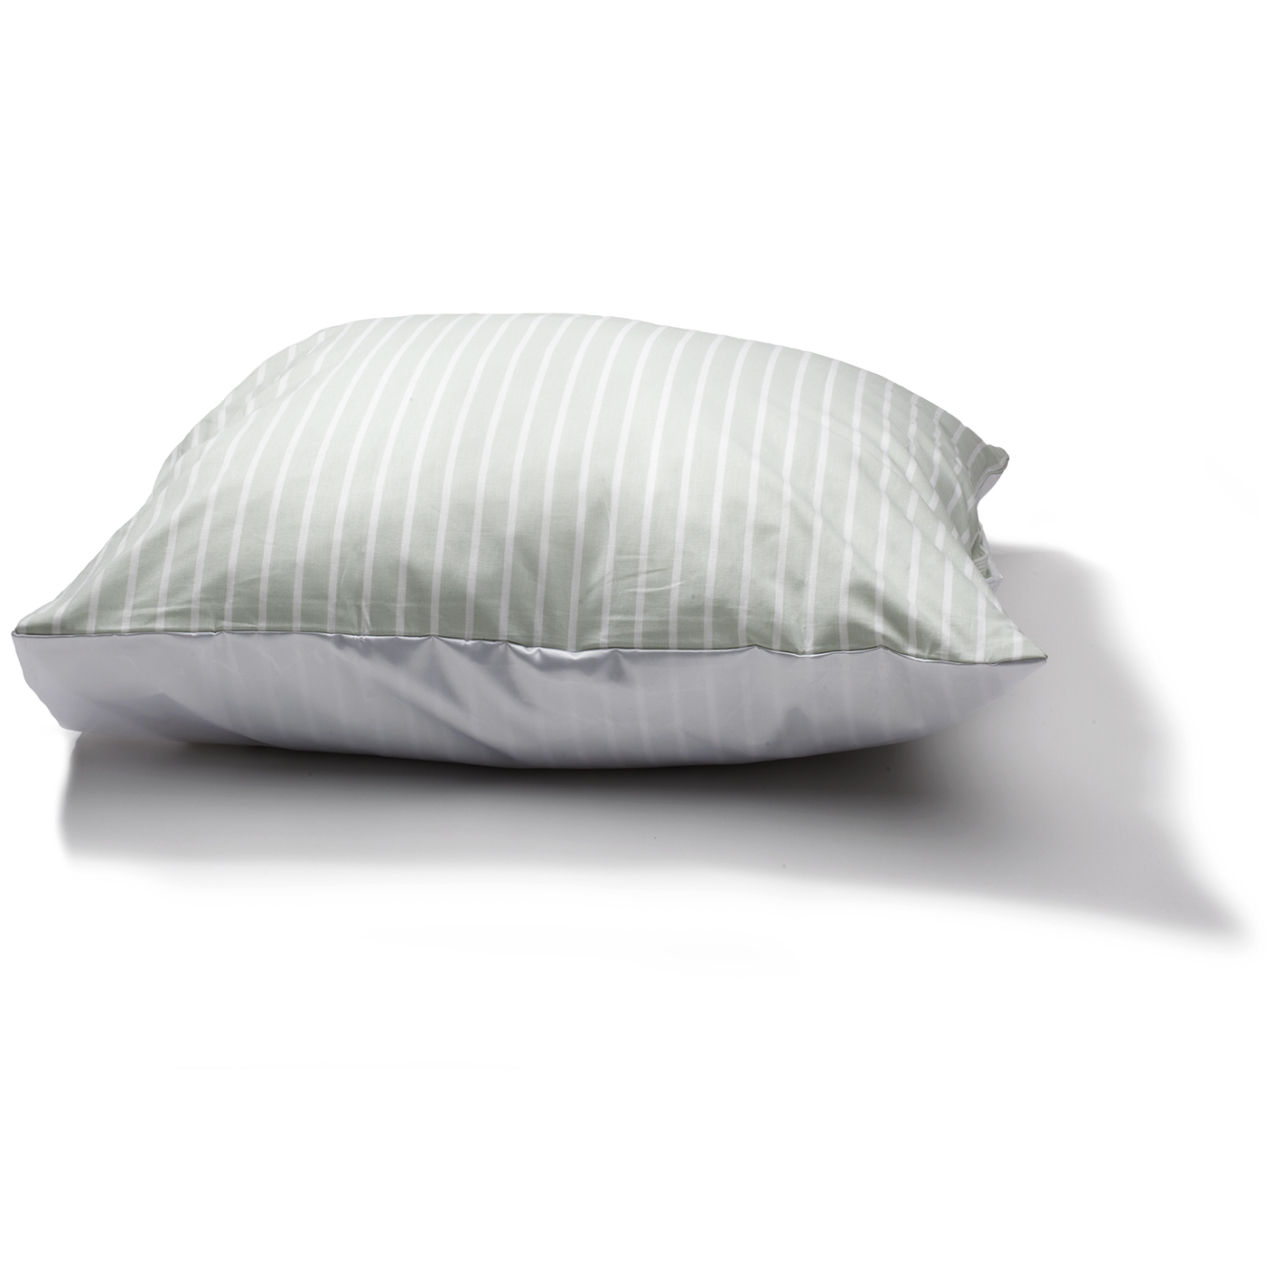 Immedia SatinSheet pillow case